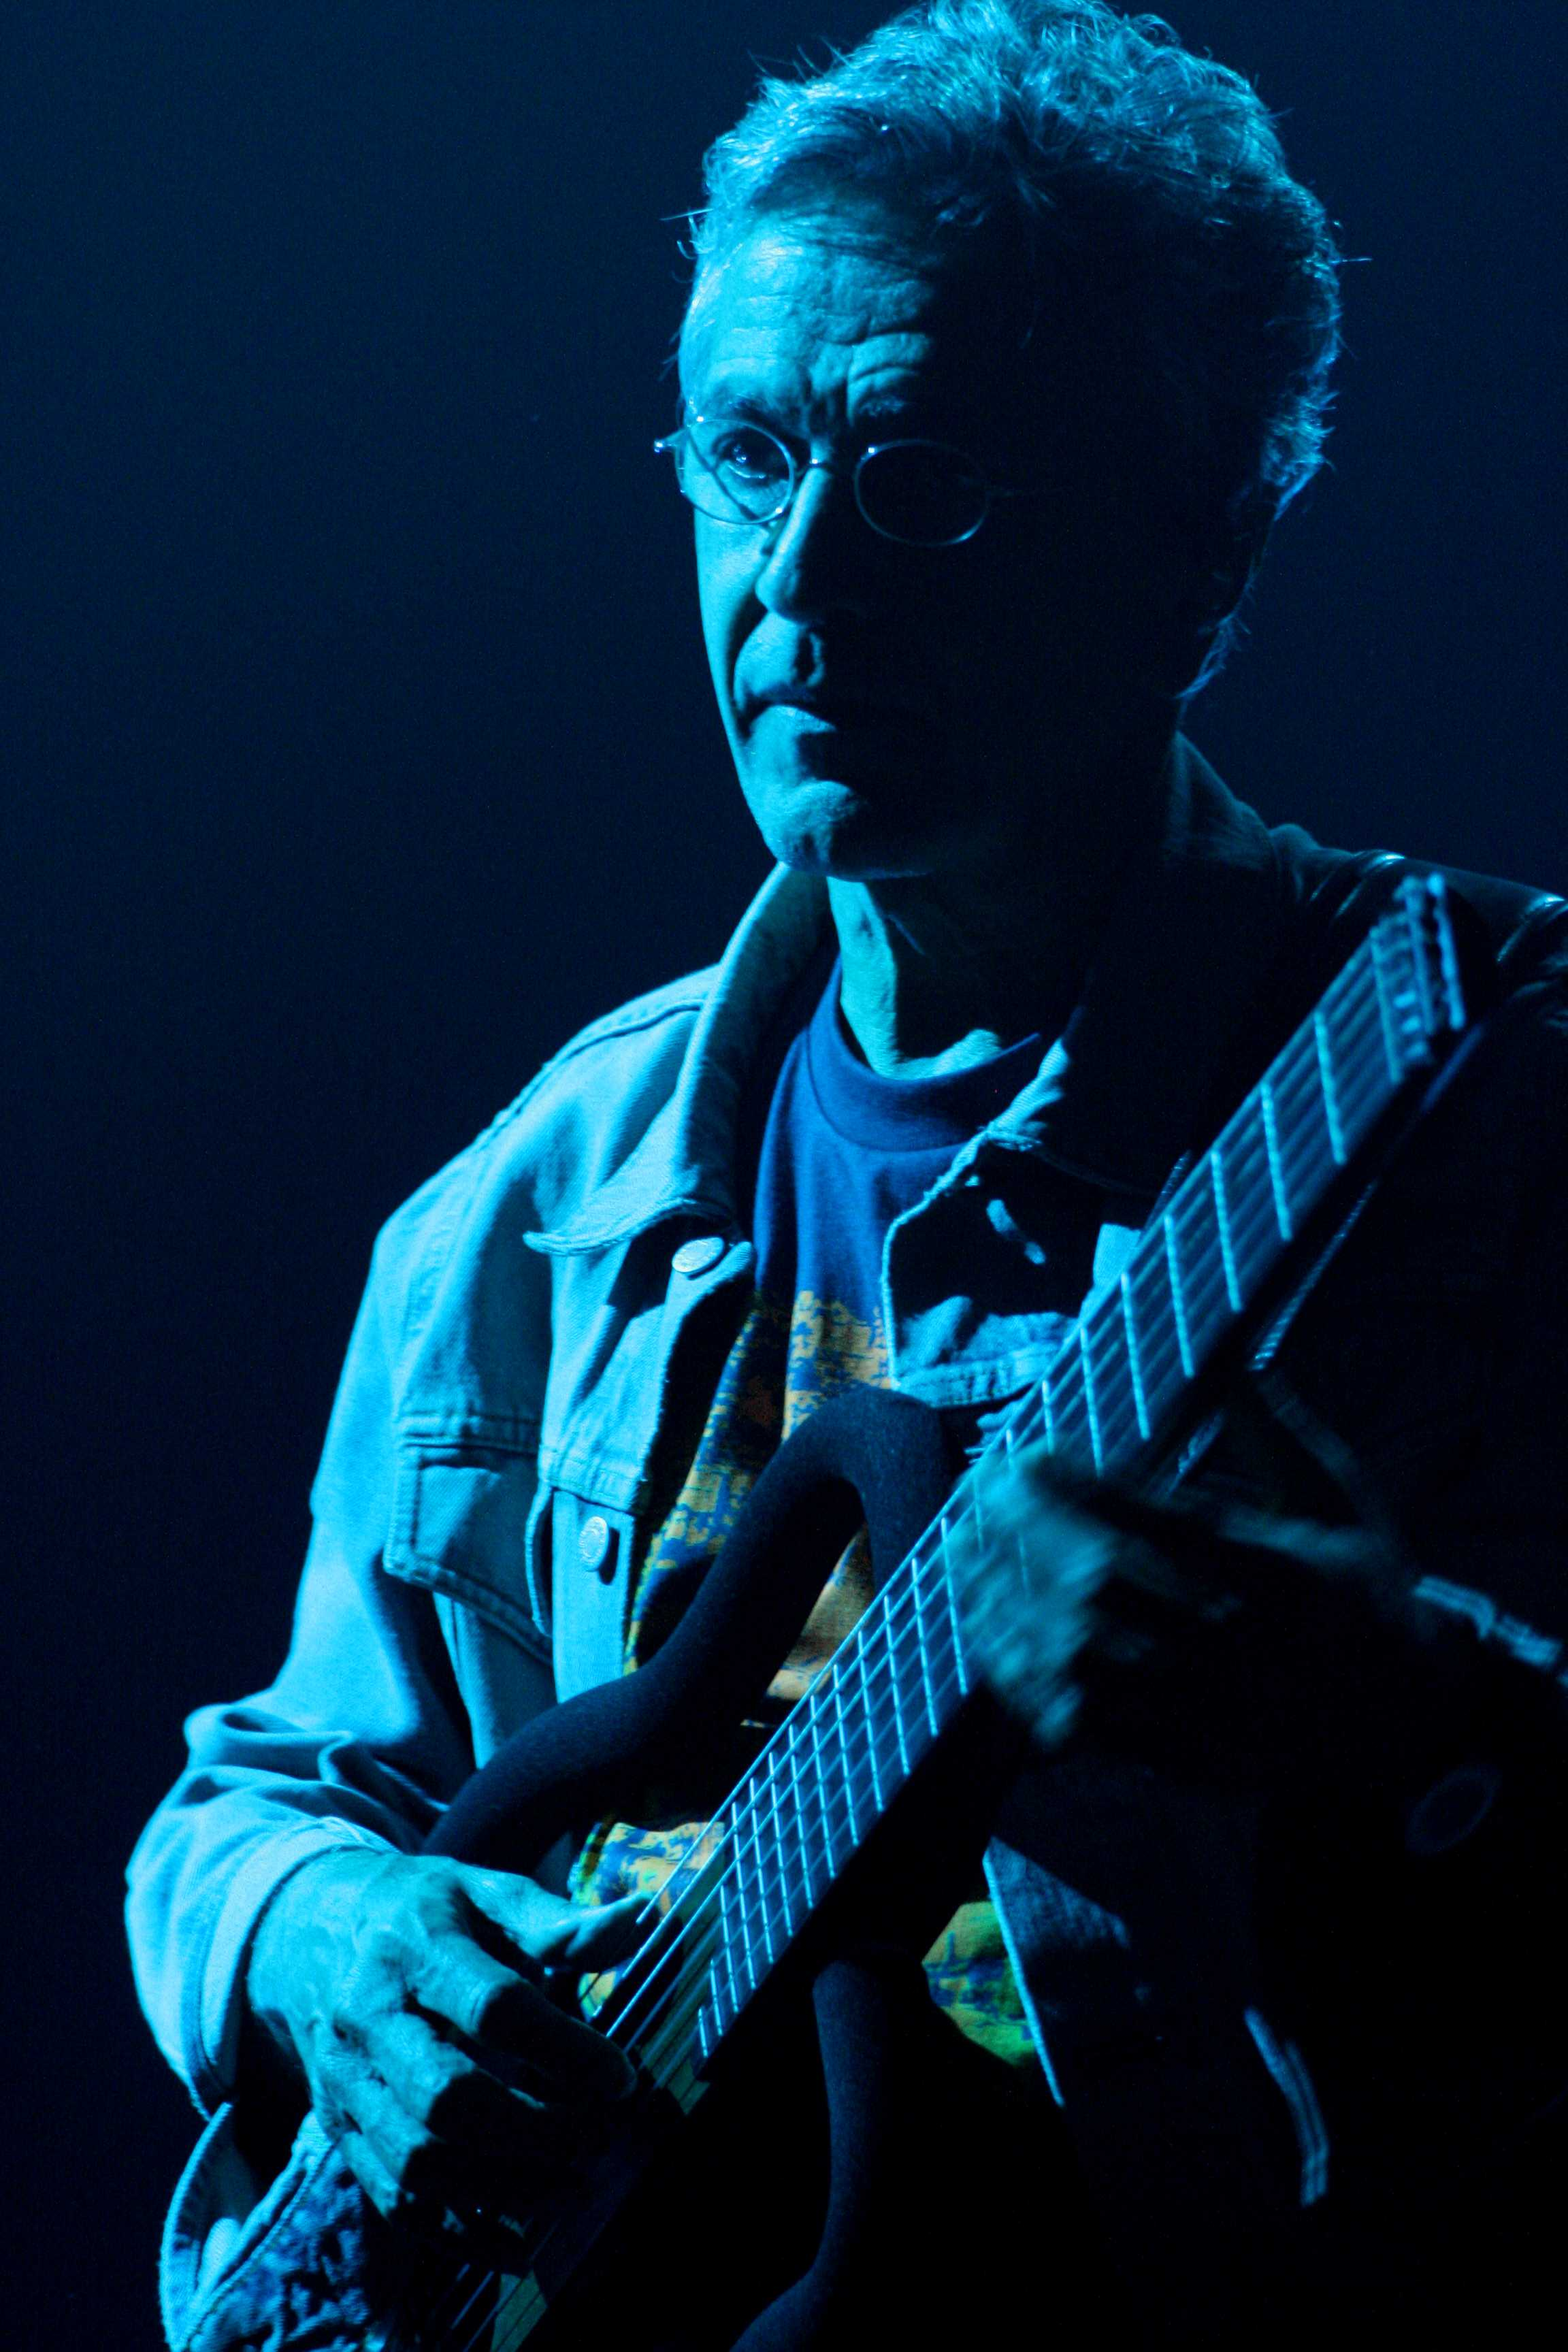 http://upload.wikimedia.org/wikipedia/commons/b/b1/Caetano_Veloso_at_TIM_Festival.jpg